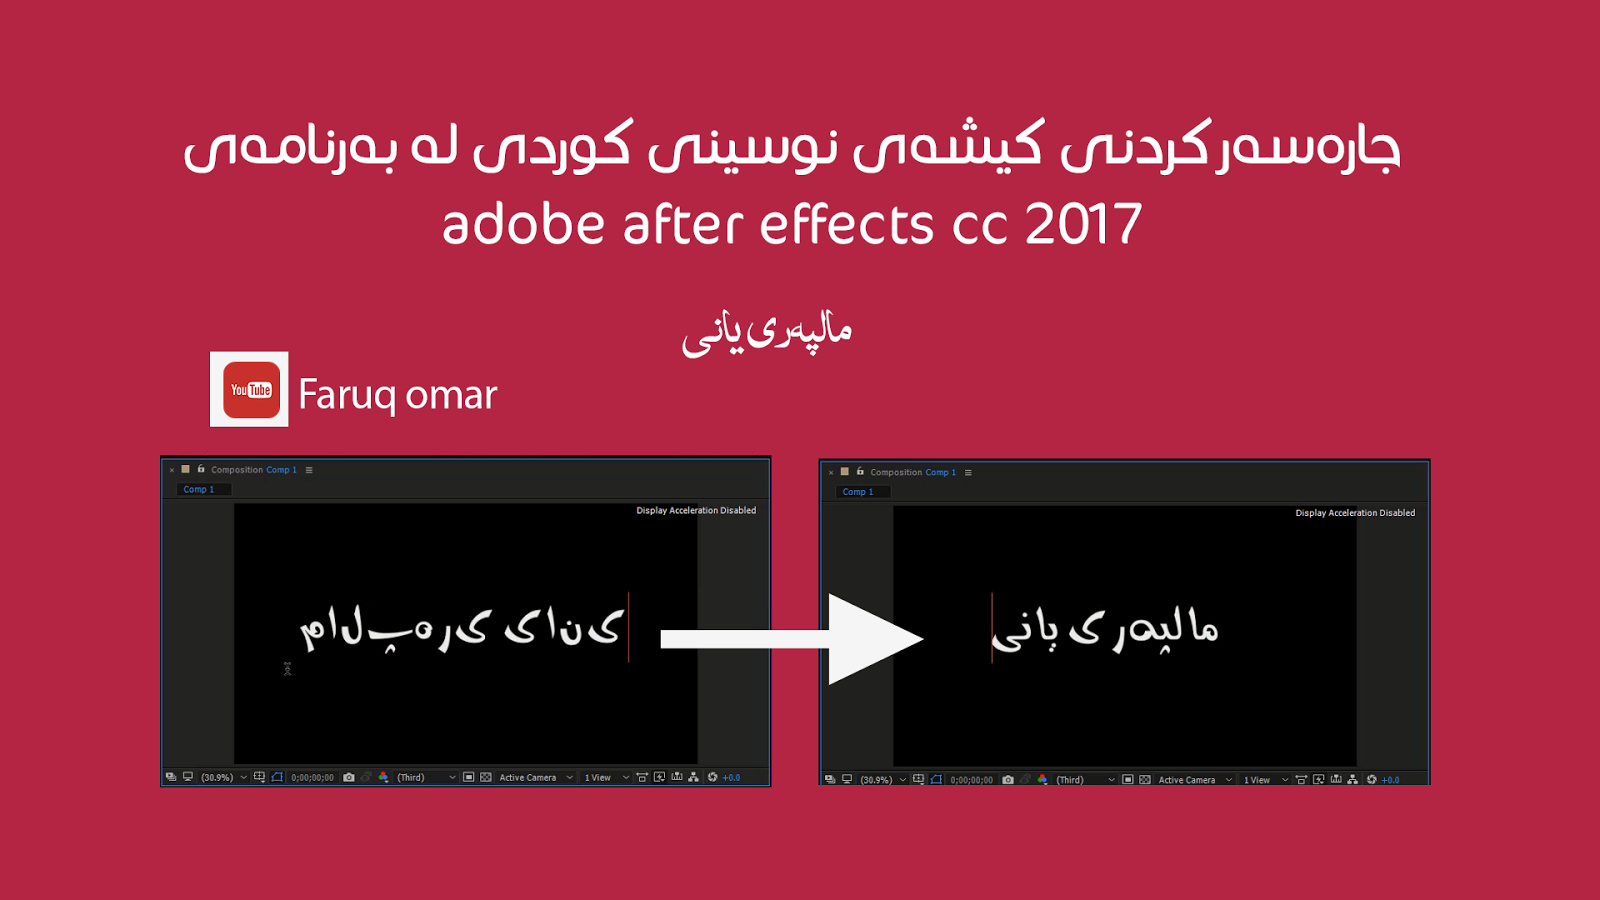 جارەسەركردنی كيشەی نوسينی كوردی لە بەرنامەی adobe after effects cc 2017